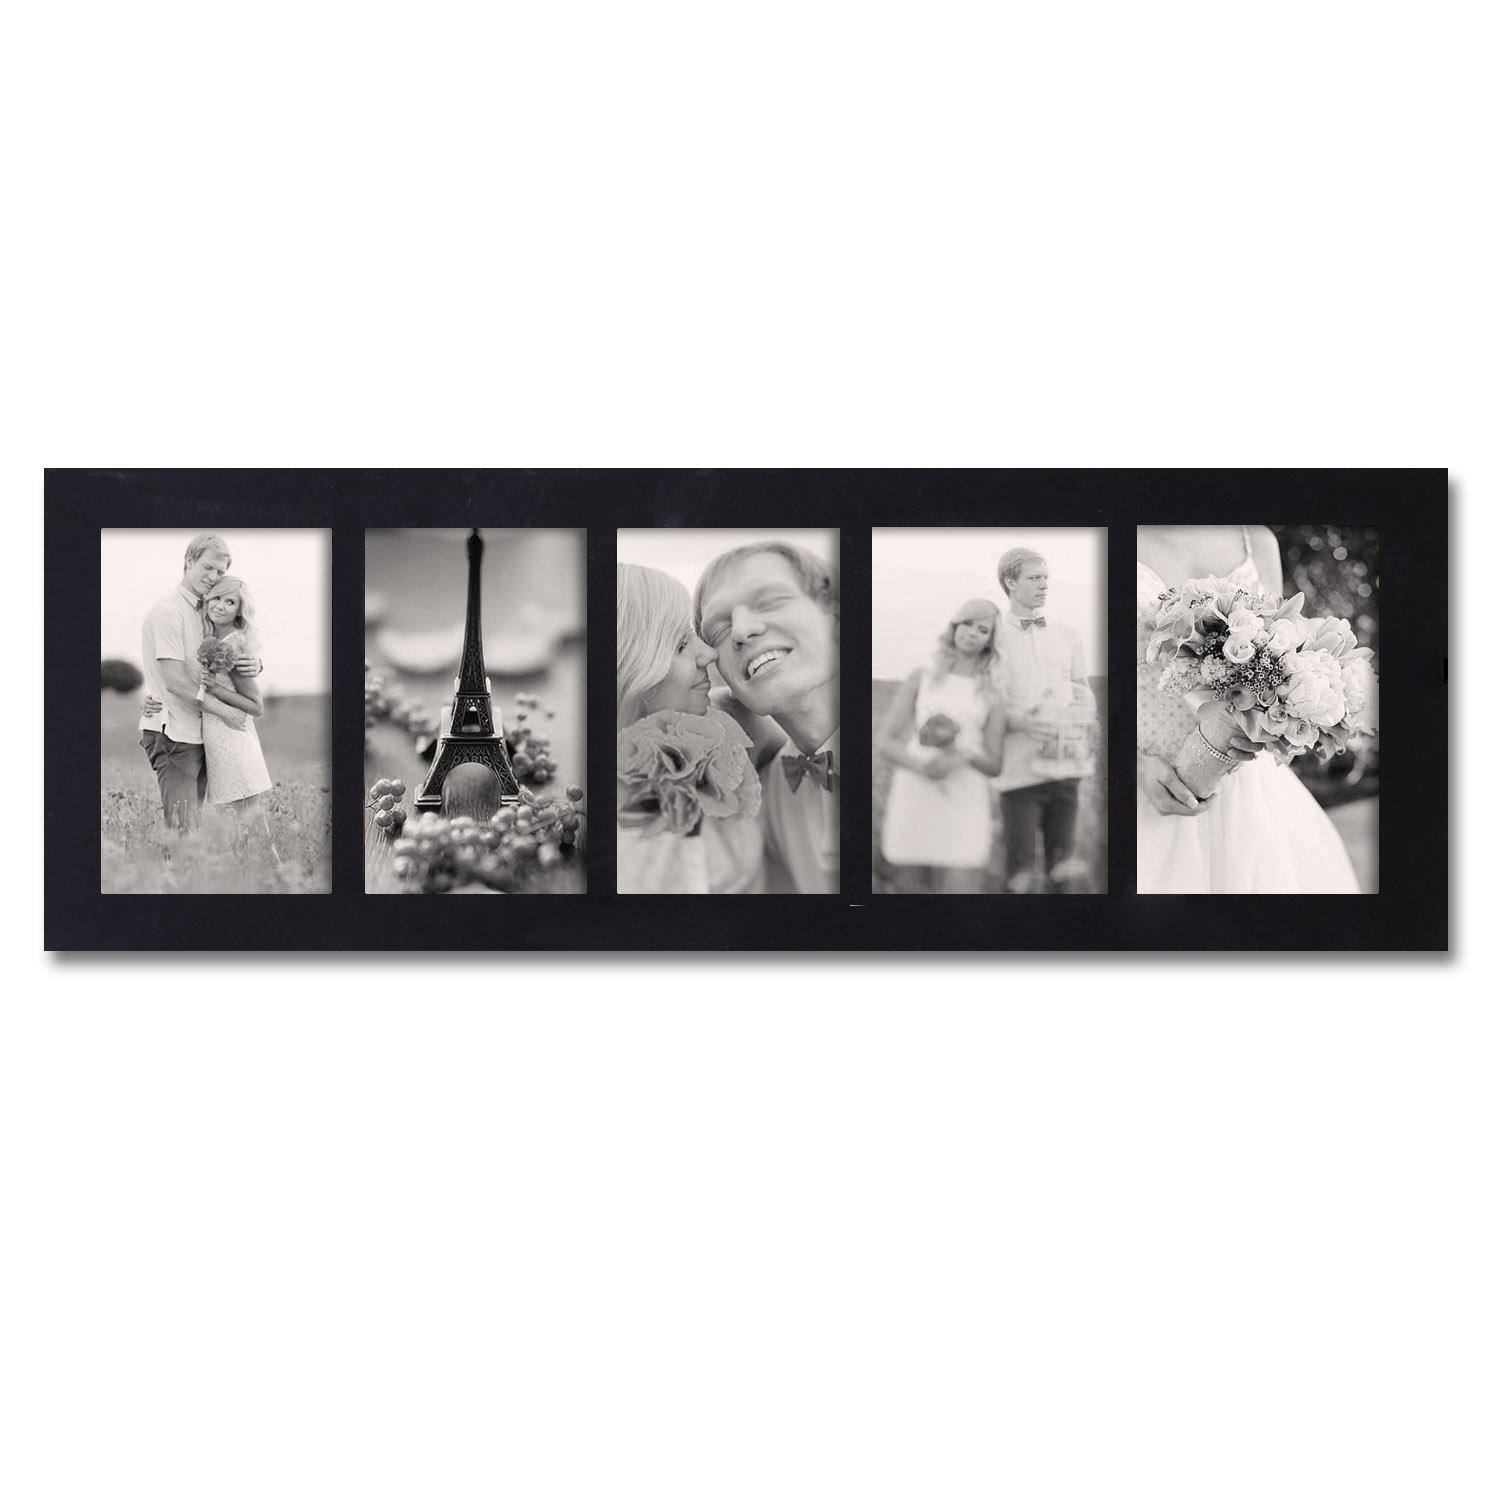 Joveco 5 Divided Openings Decorative Wood Wall Hanging Picture Photo Frame (Black)